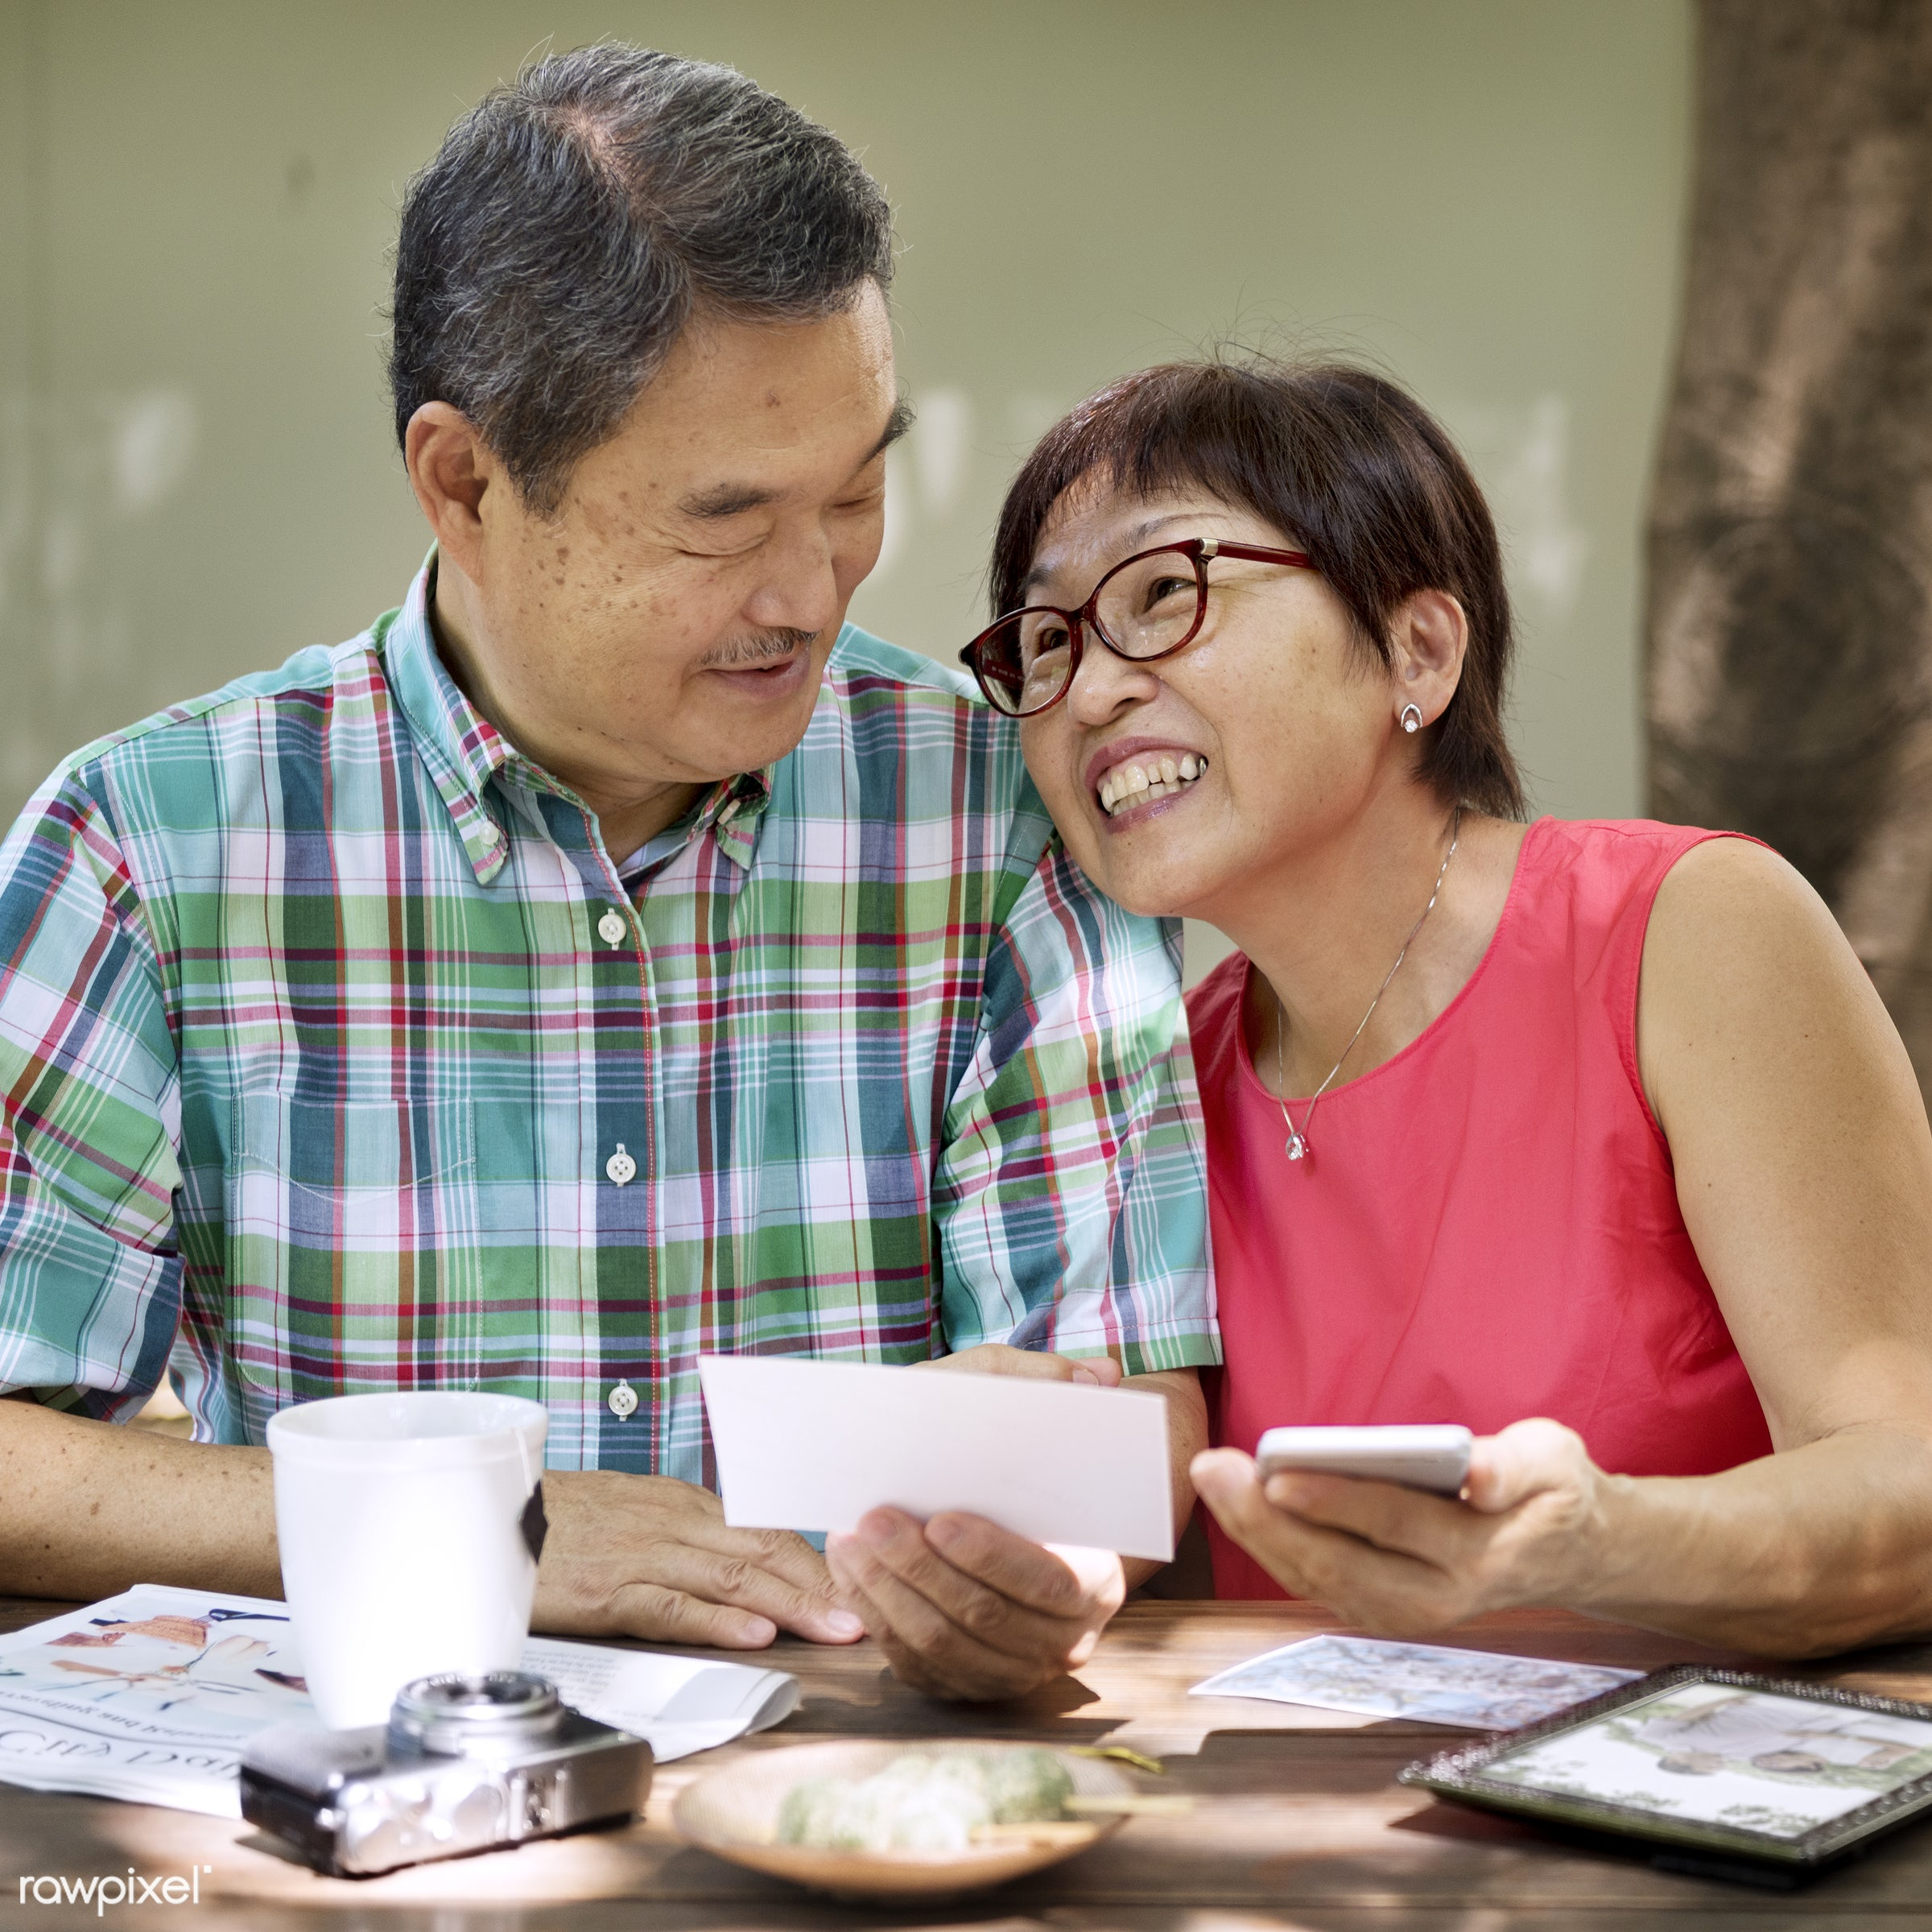 asian, beverage, camera, care, casual, caucasian, cheerful, couple, cup, device, enjoying, eyeglasses, female, food, garden...